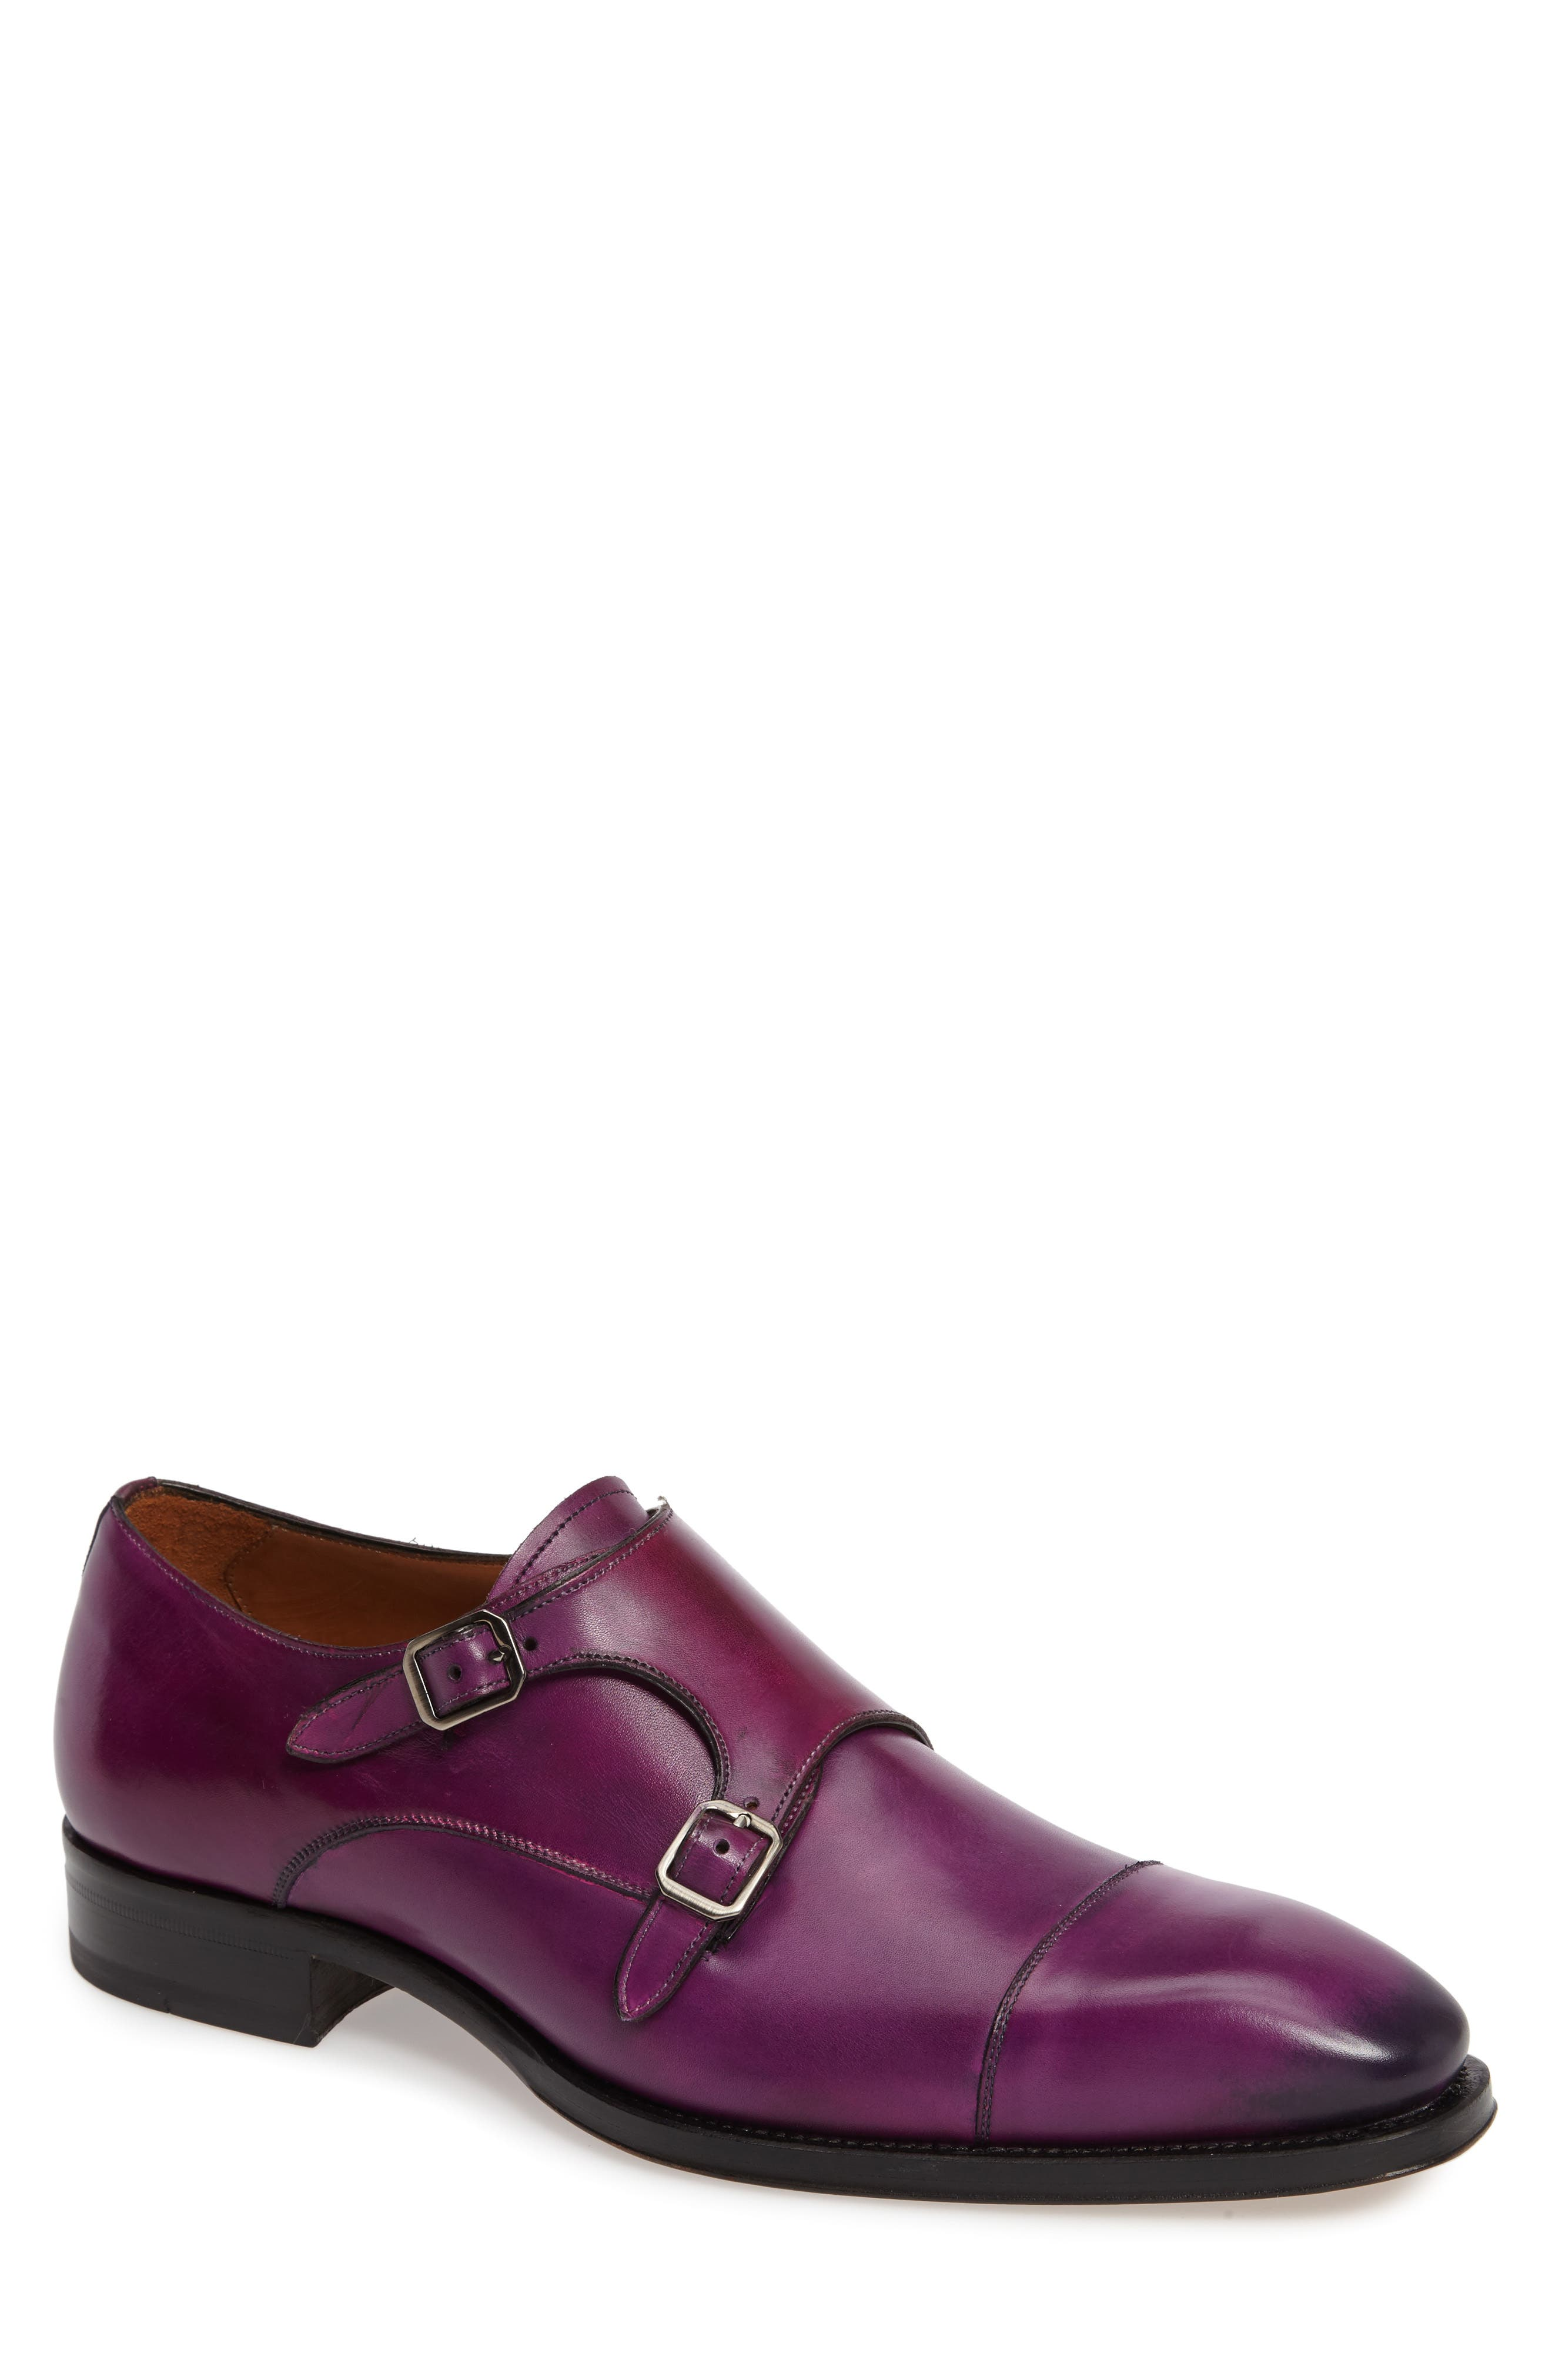 Cajal Double Monk Strap Cap Toe Shoe,                             Main thumbnail 1, color,                             Purple Leather